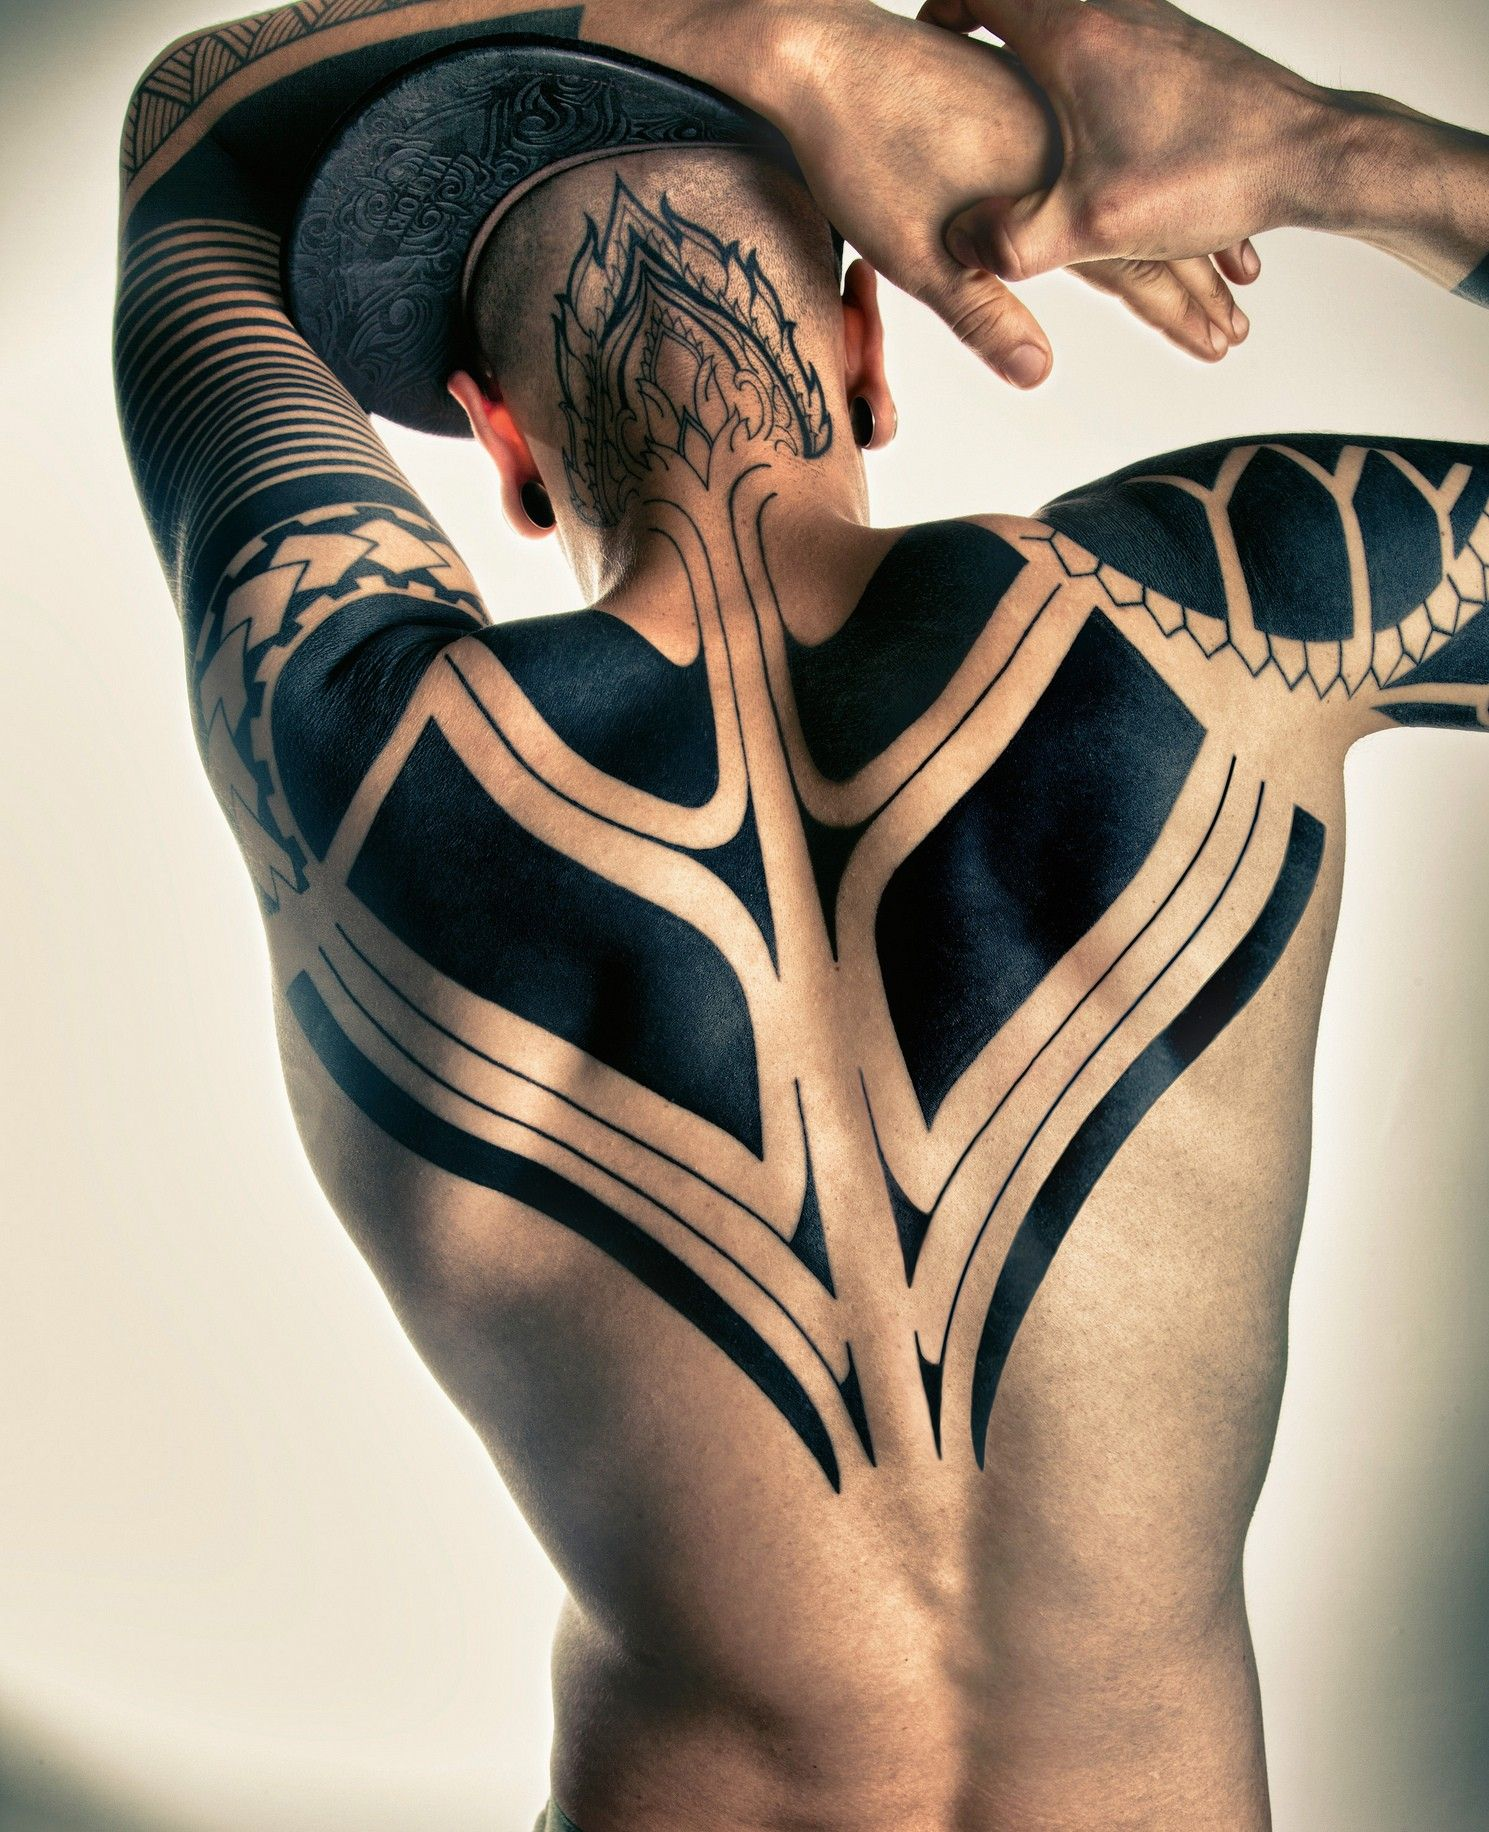 Pin By Mytorius On Believe Tattoo Men: 38 Mysterious Traditional Tribal Tattoo For Men And Women